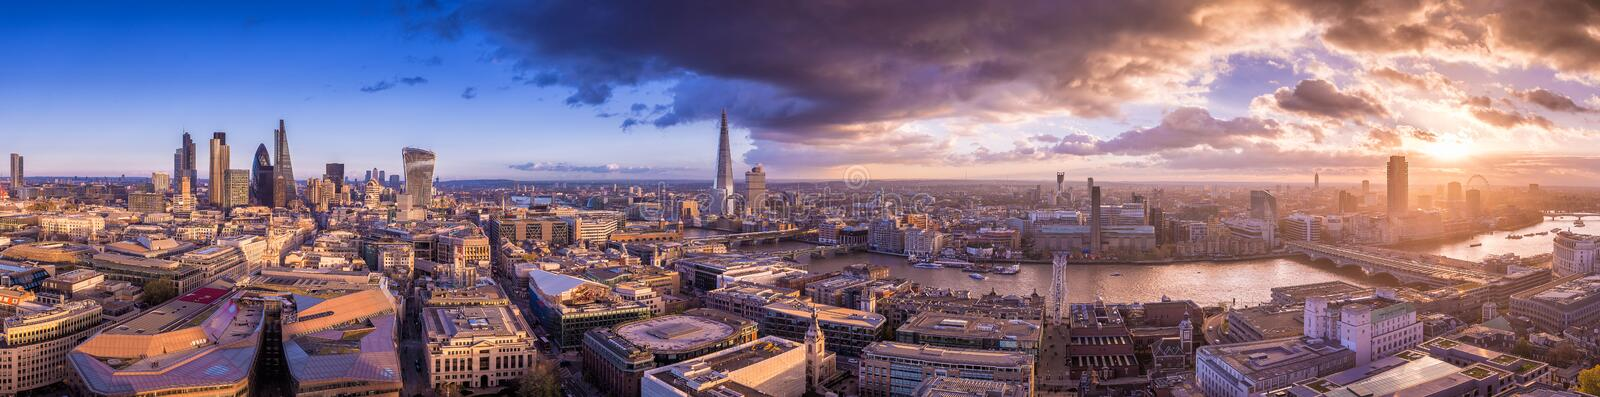 Panoramic skyline of south and east part of London with beautiful dramatic clouds and sunset - UK. Panoramic skyline of south and east part of London with stock image